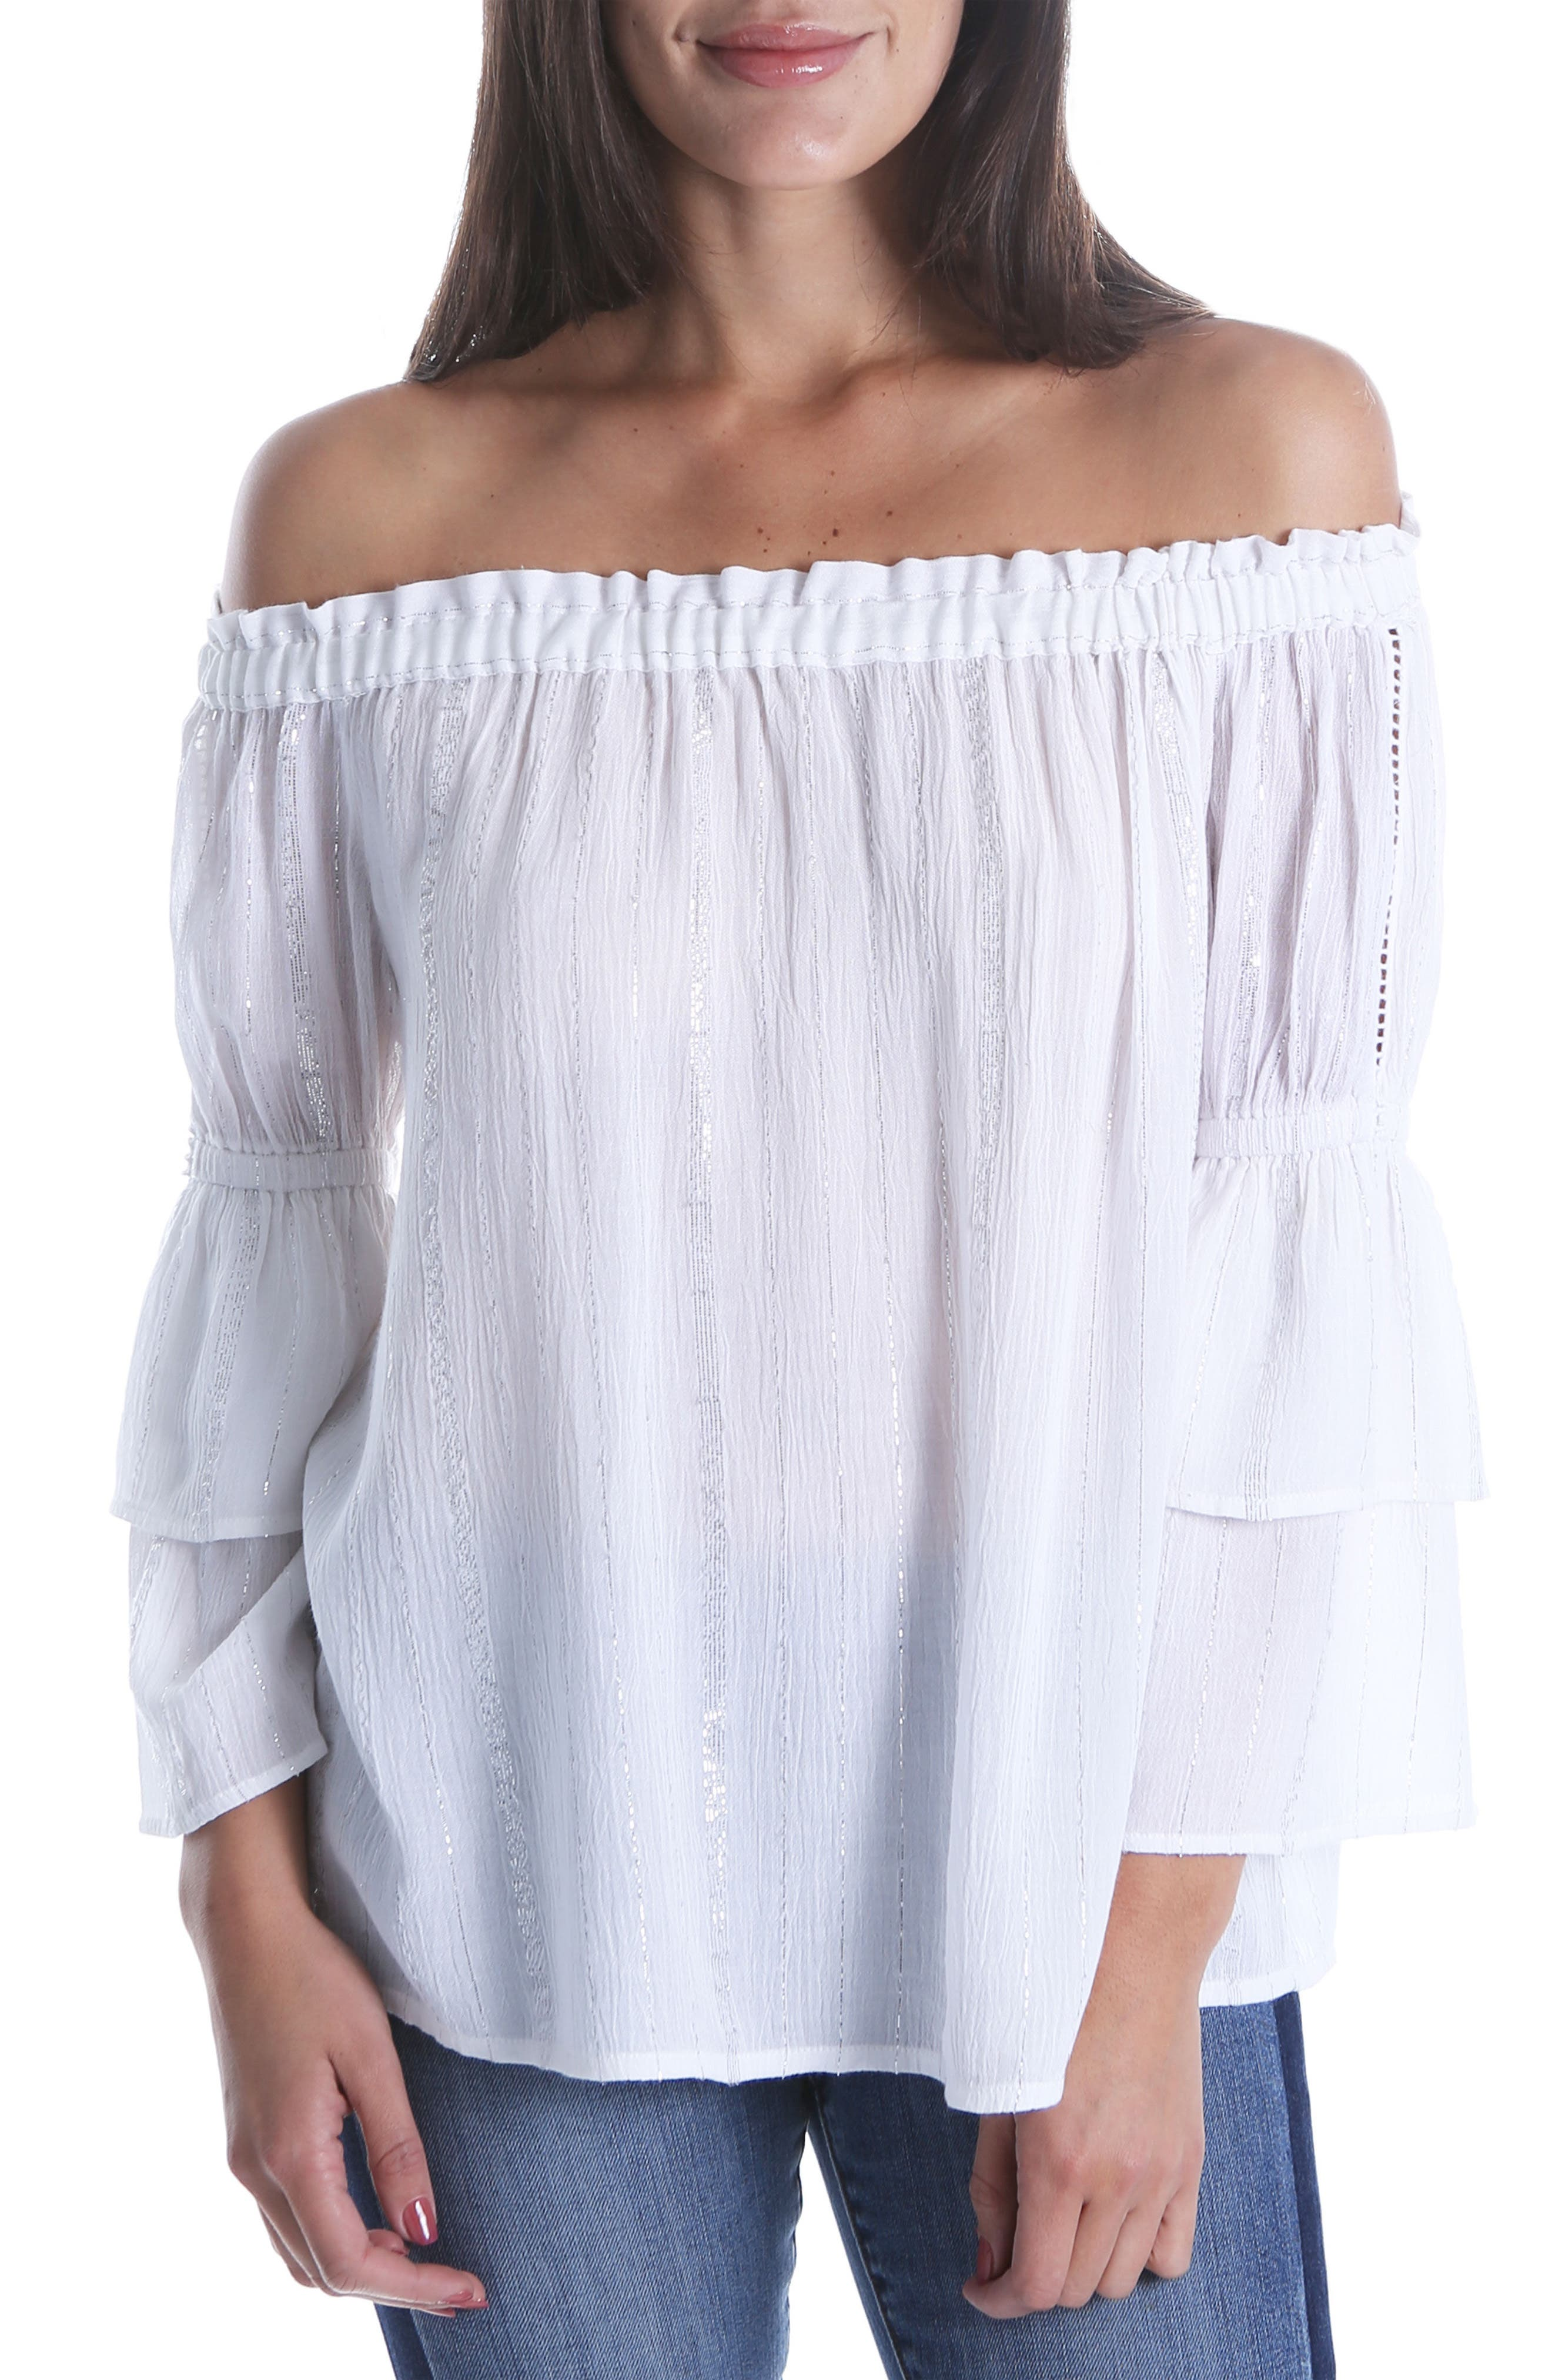 Kaylan Off the Shoulder Ruffle Sleeve Top,                             Main thumbnail 1, color,                             WHITE/ SILVER